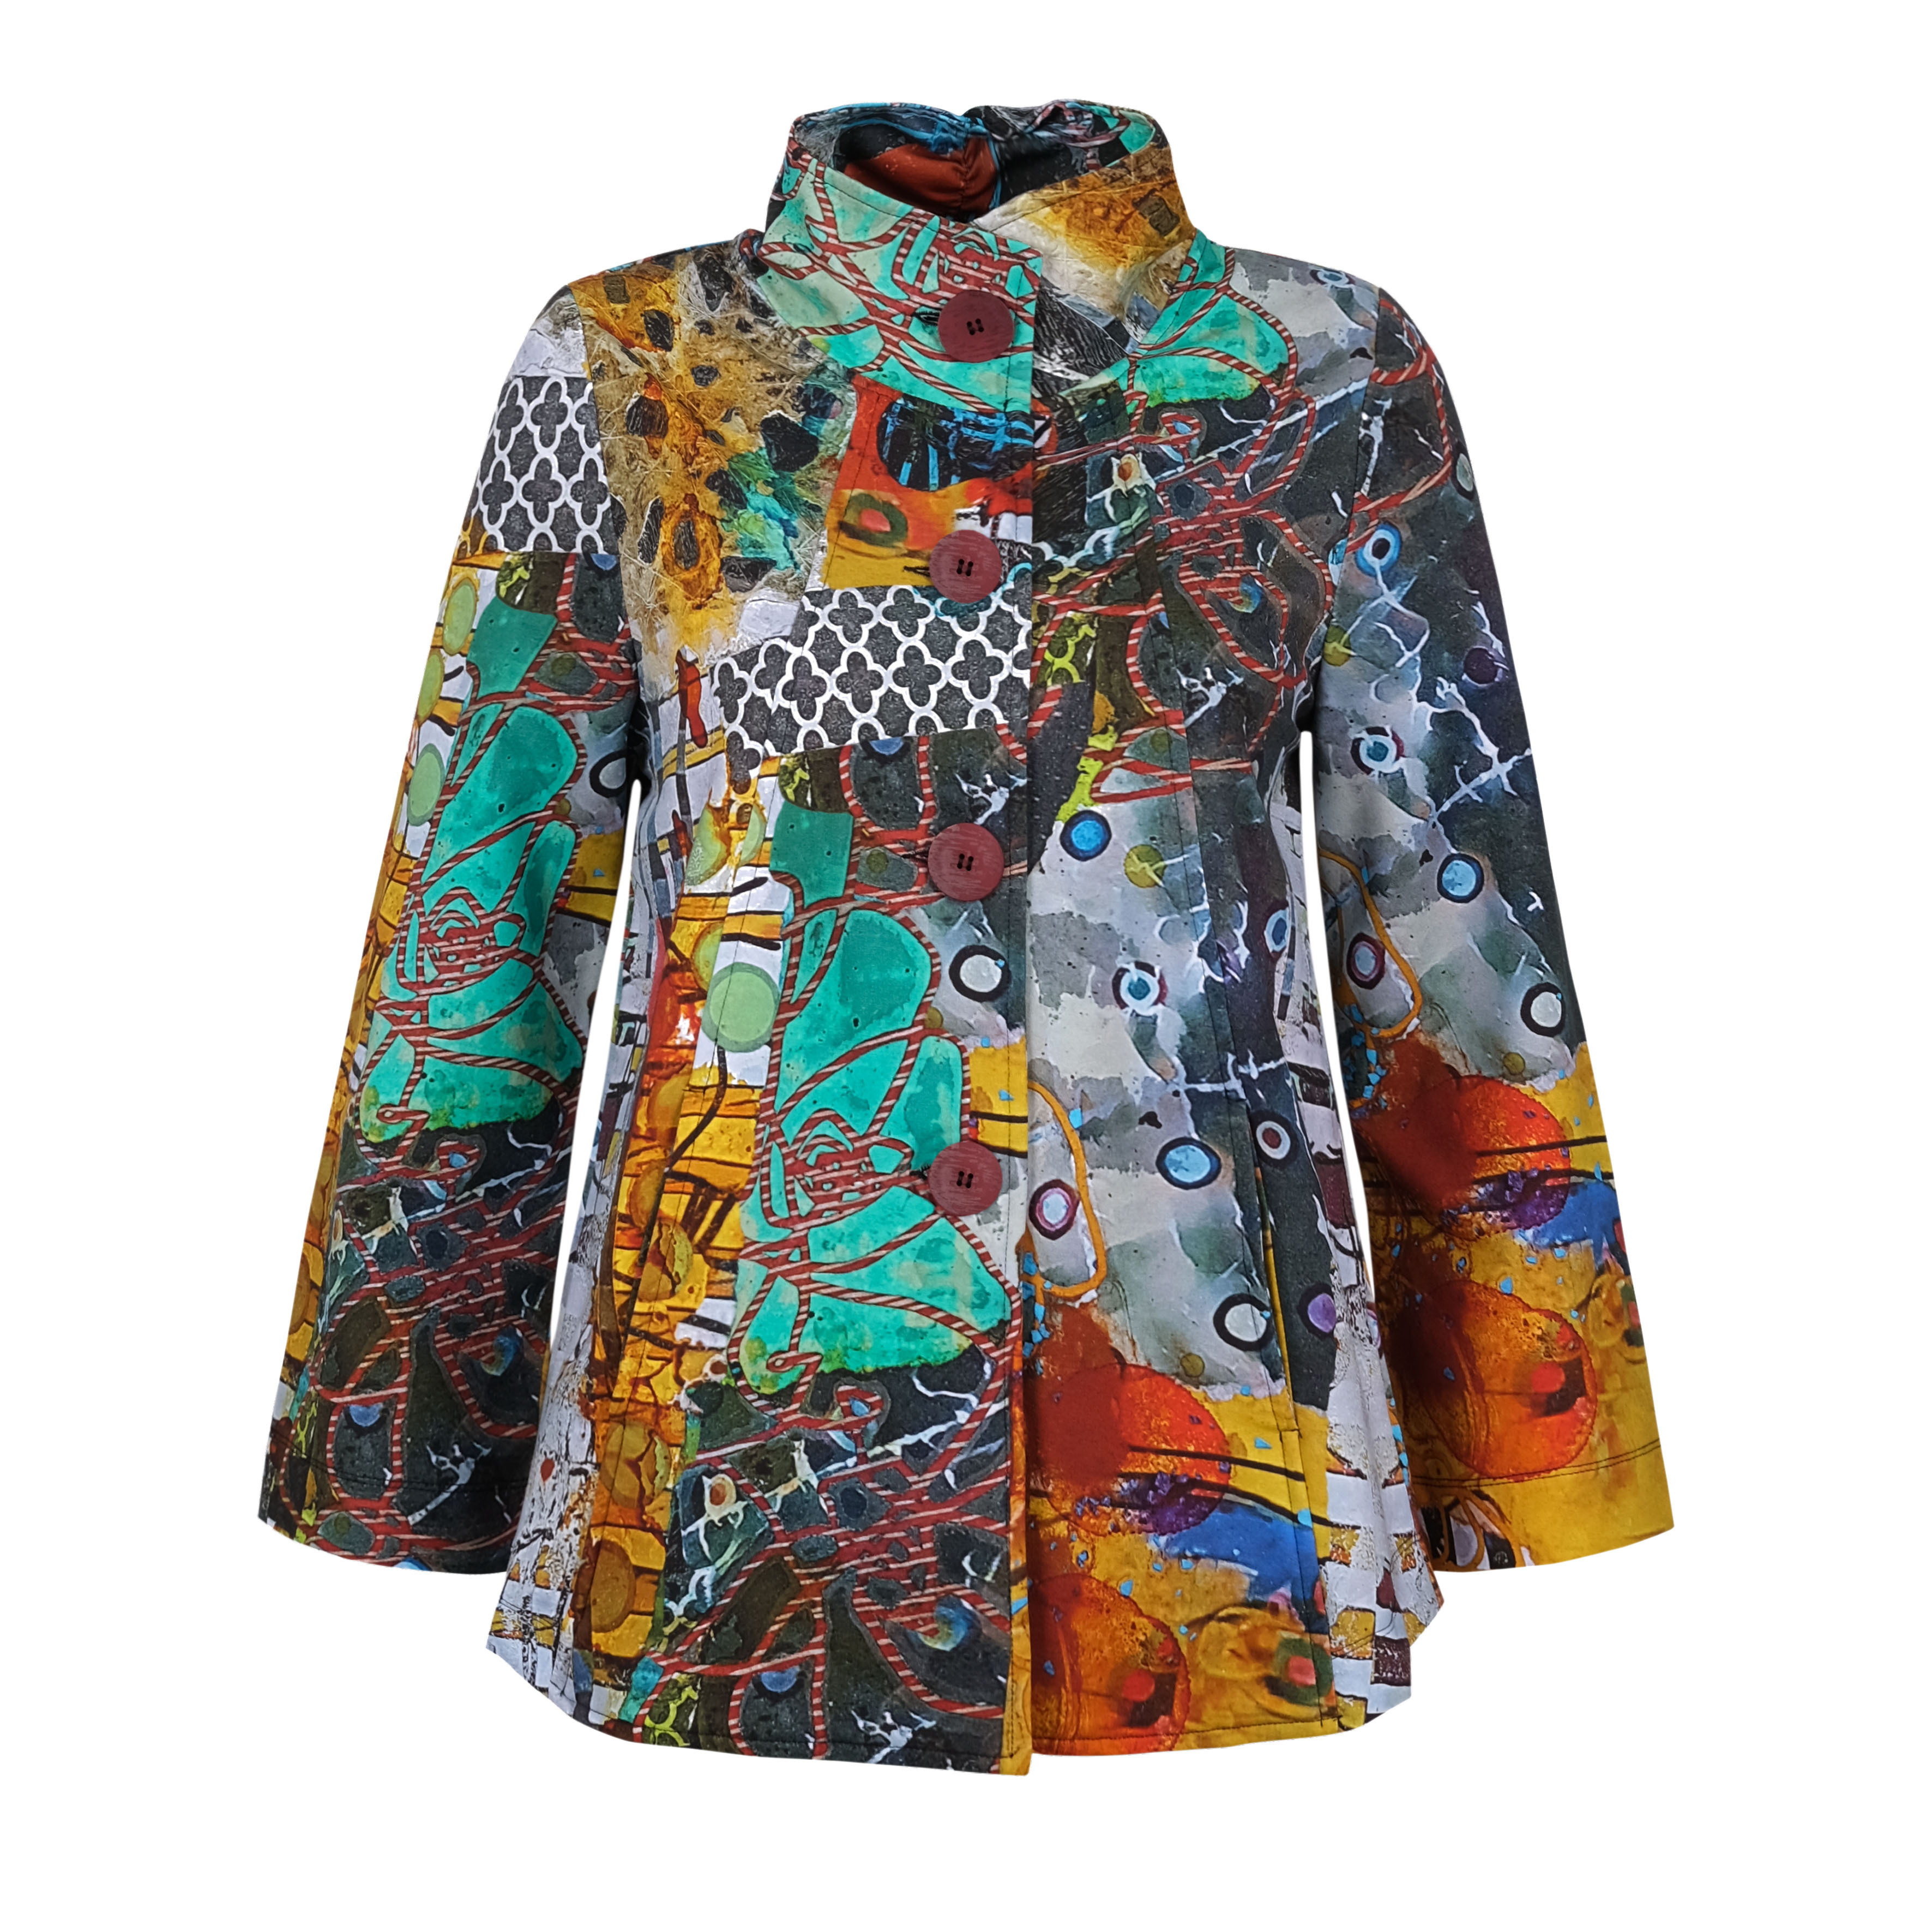 Simply Art Dolcezza: Colors Of Flight Aviary Abstract Art Flared Jacket (1 Available at Special price!) Dolcezza_SimplyArt_70735